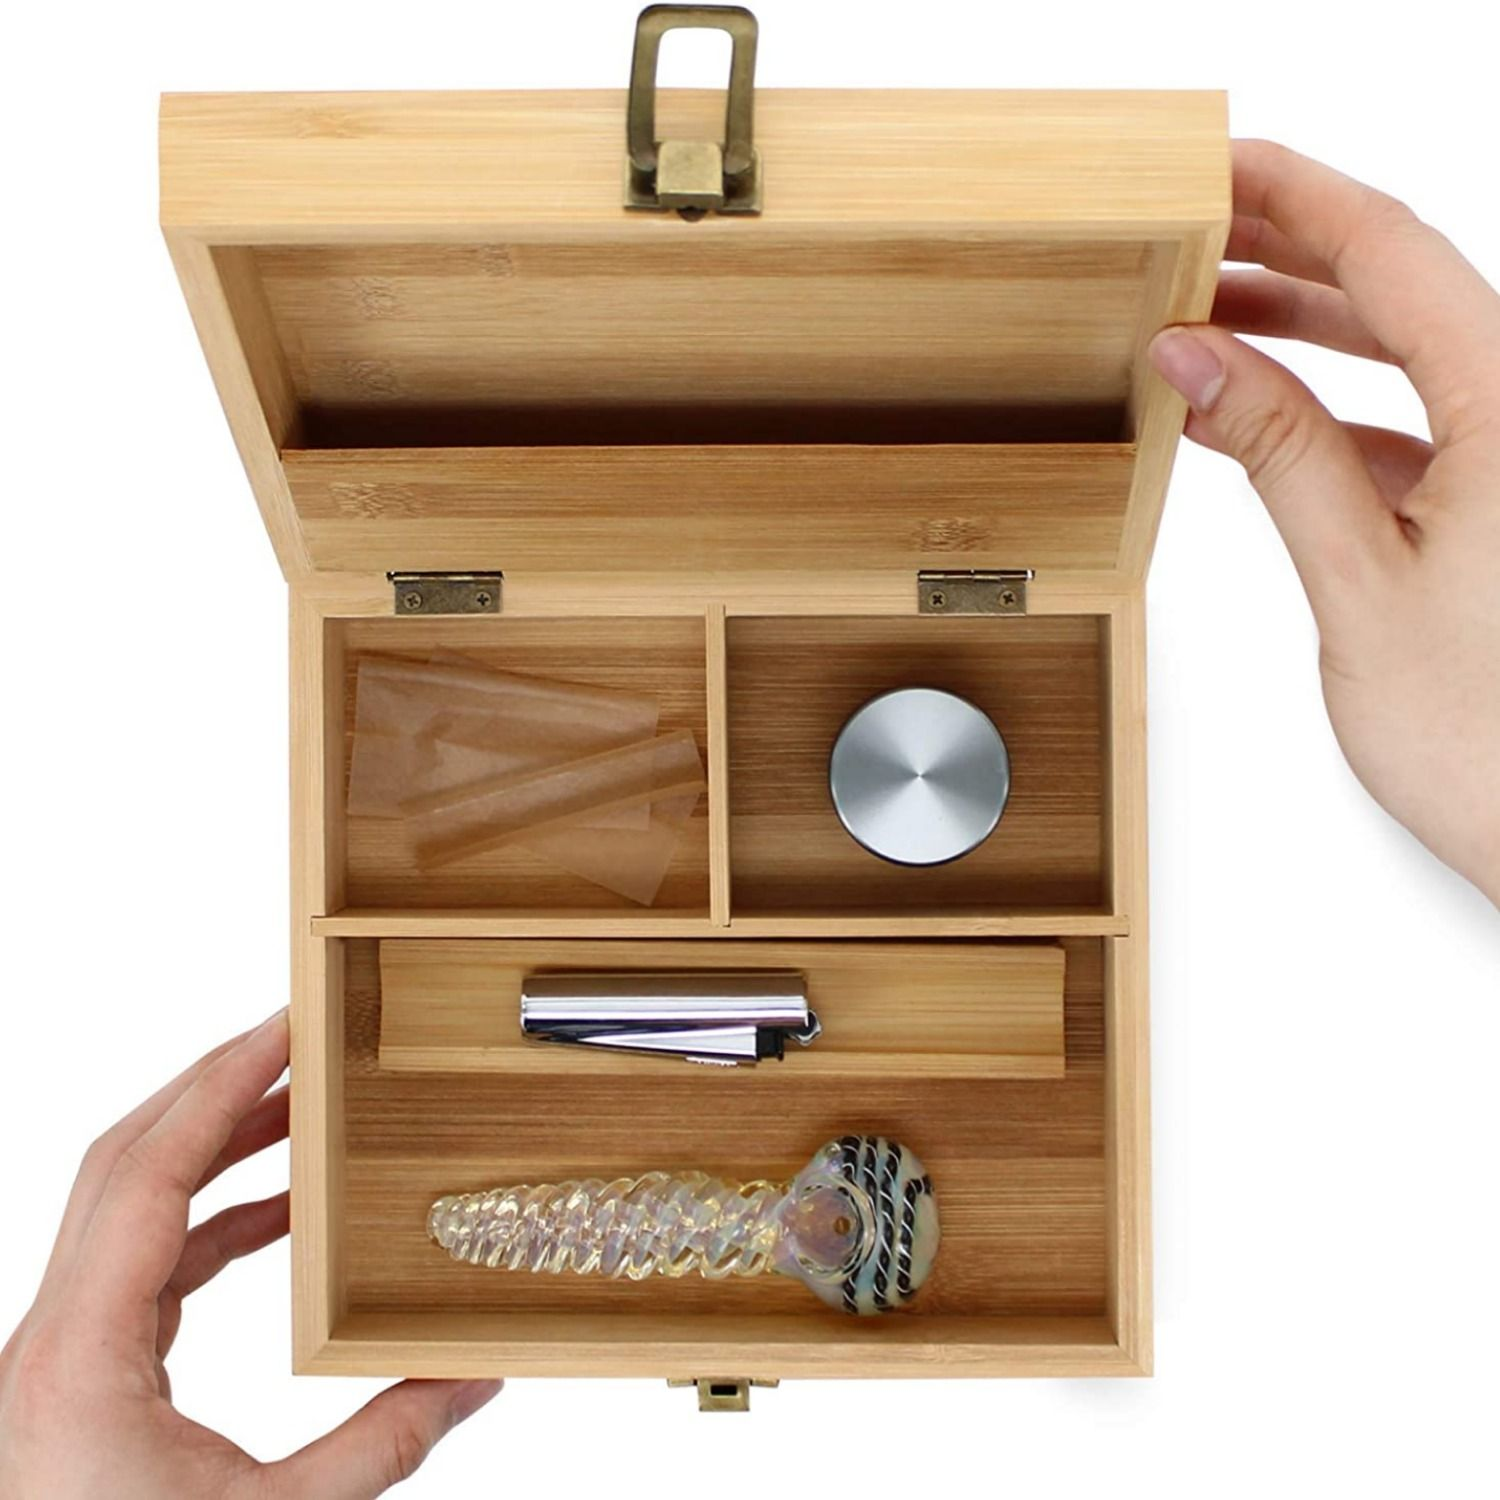 Stash Box with Rolling Tray and Smoking Accessories Included